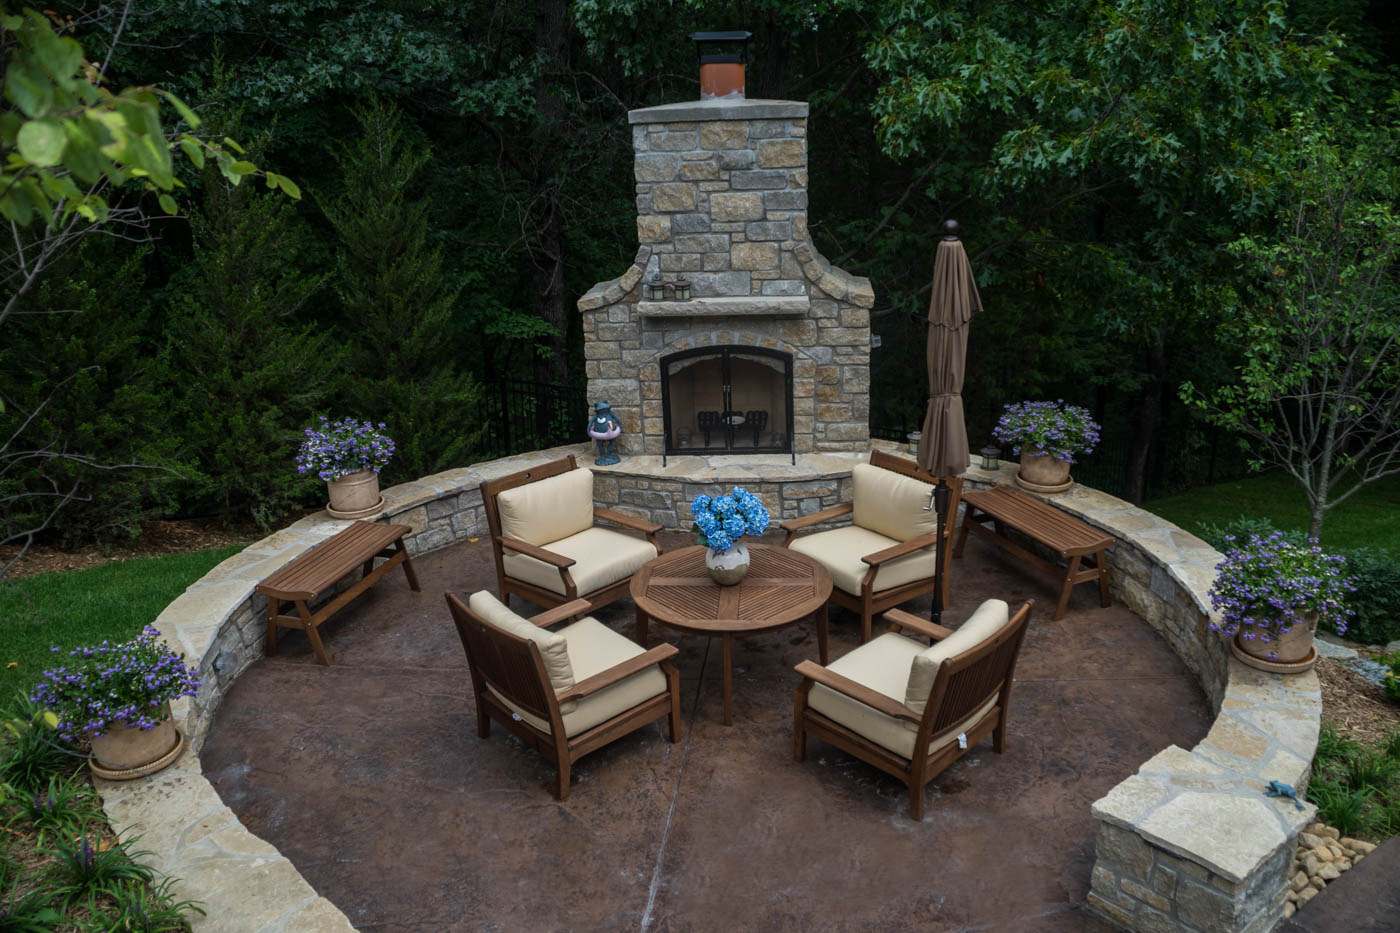 Wooded Backyard Landscaping Design Poynter Landscape intended for 11 Awesome Ideas How to Makeover Wooded Backyard Ideas